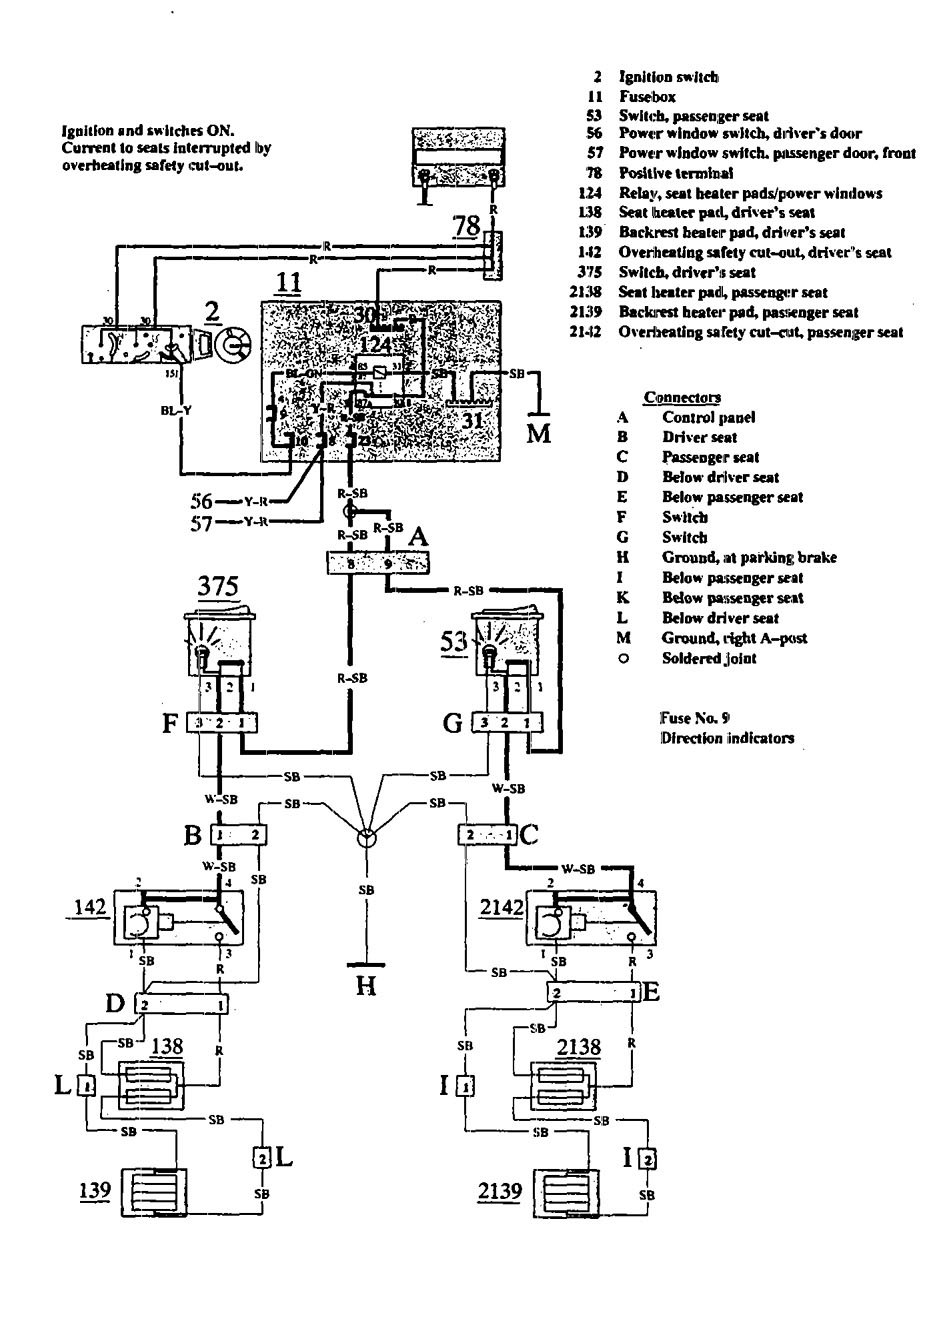 Seat Heater Wiring Diagram : 26 Wiring Diagram Images